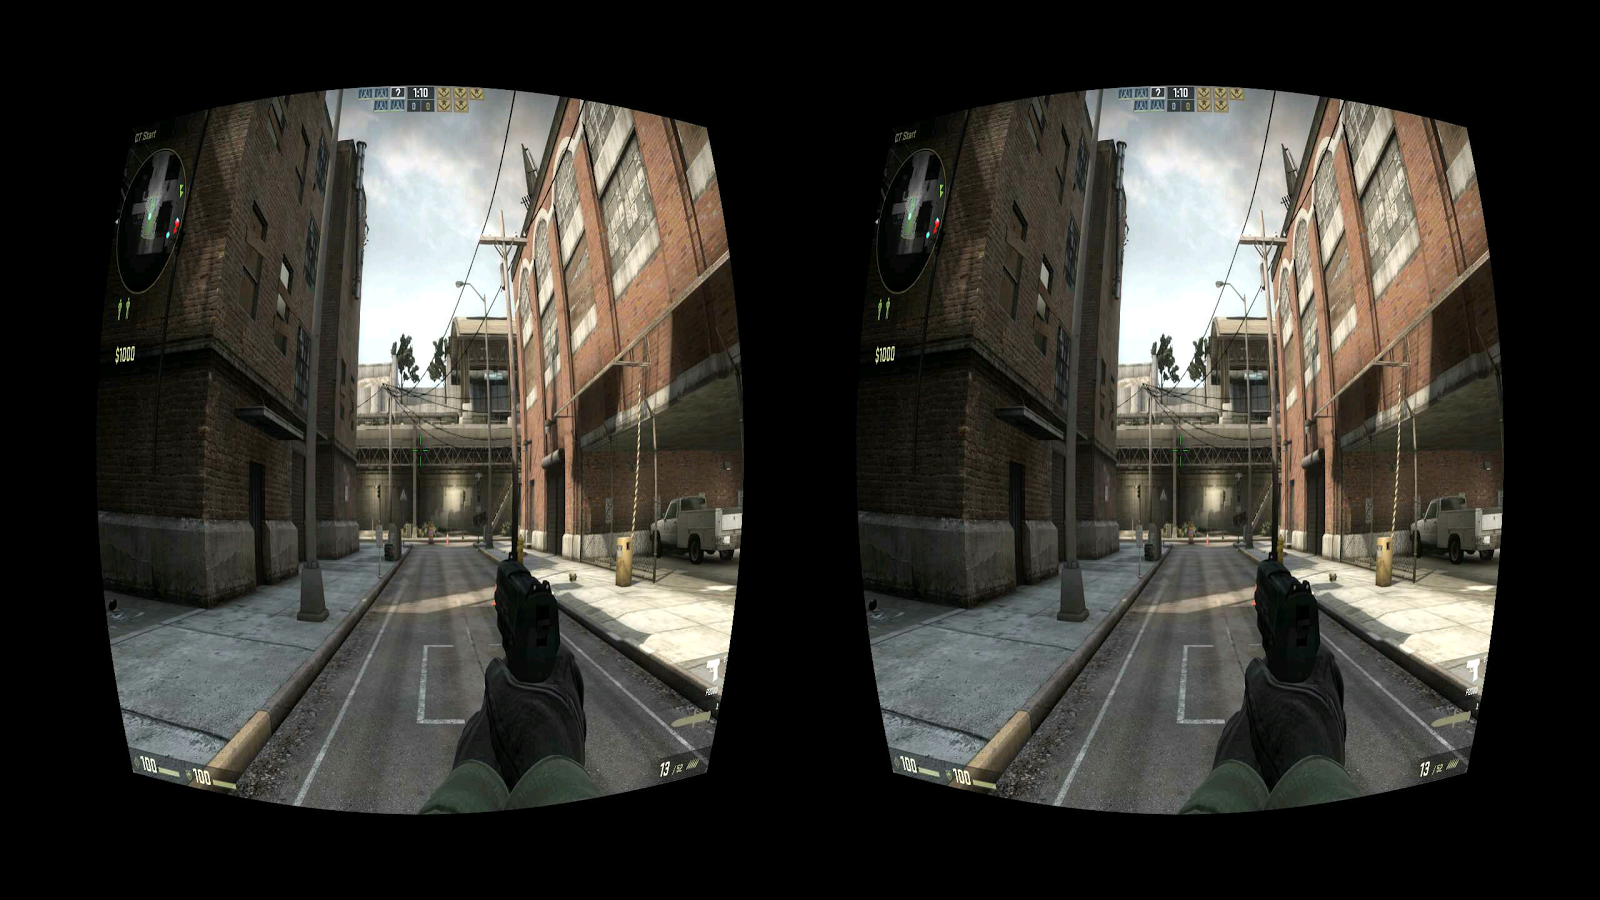 Intugame vr premium latest version apk | androidappsapk. Co.